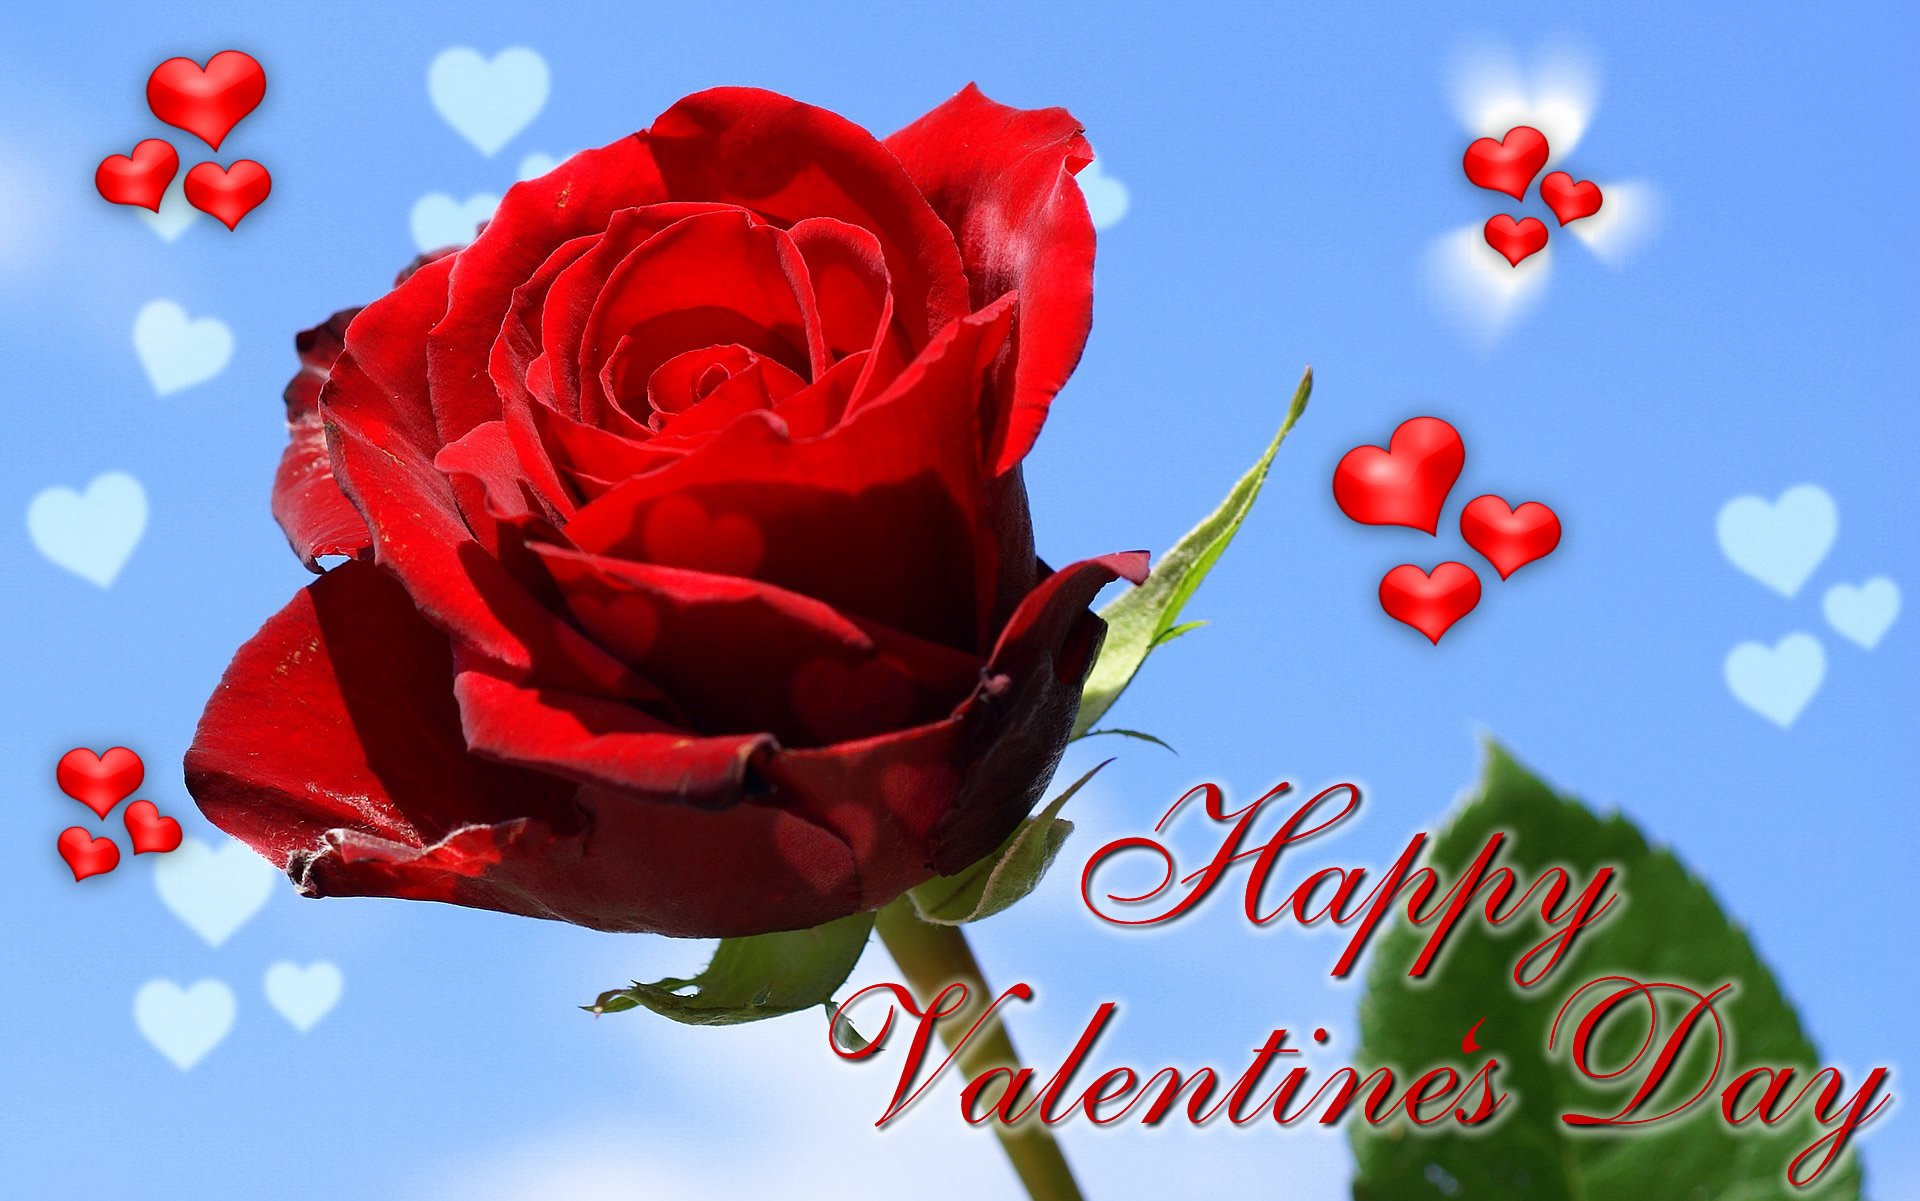 sweet-rose-wallpaper-valentine-day-free-beautiful-hd - hd wallpaper